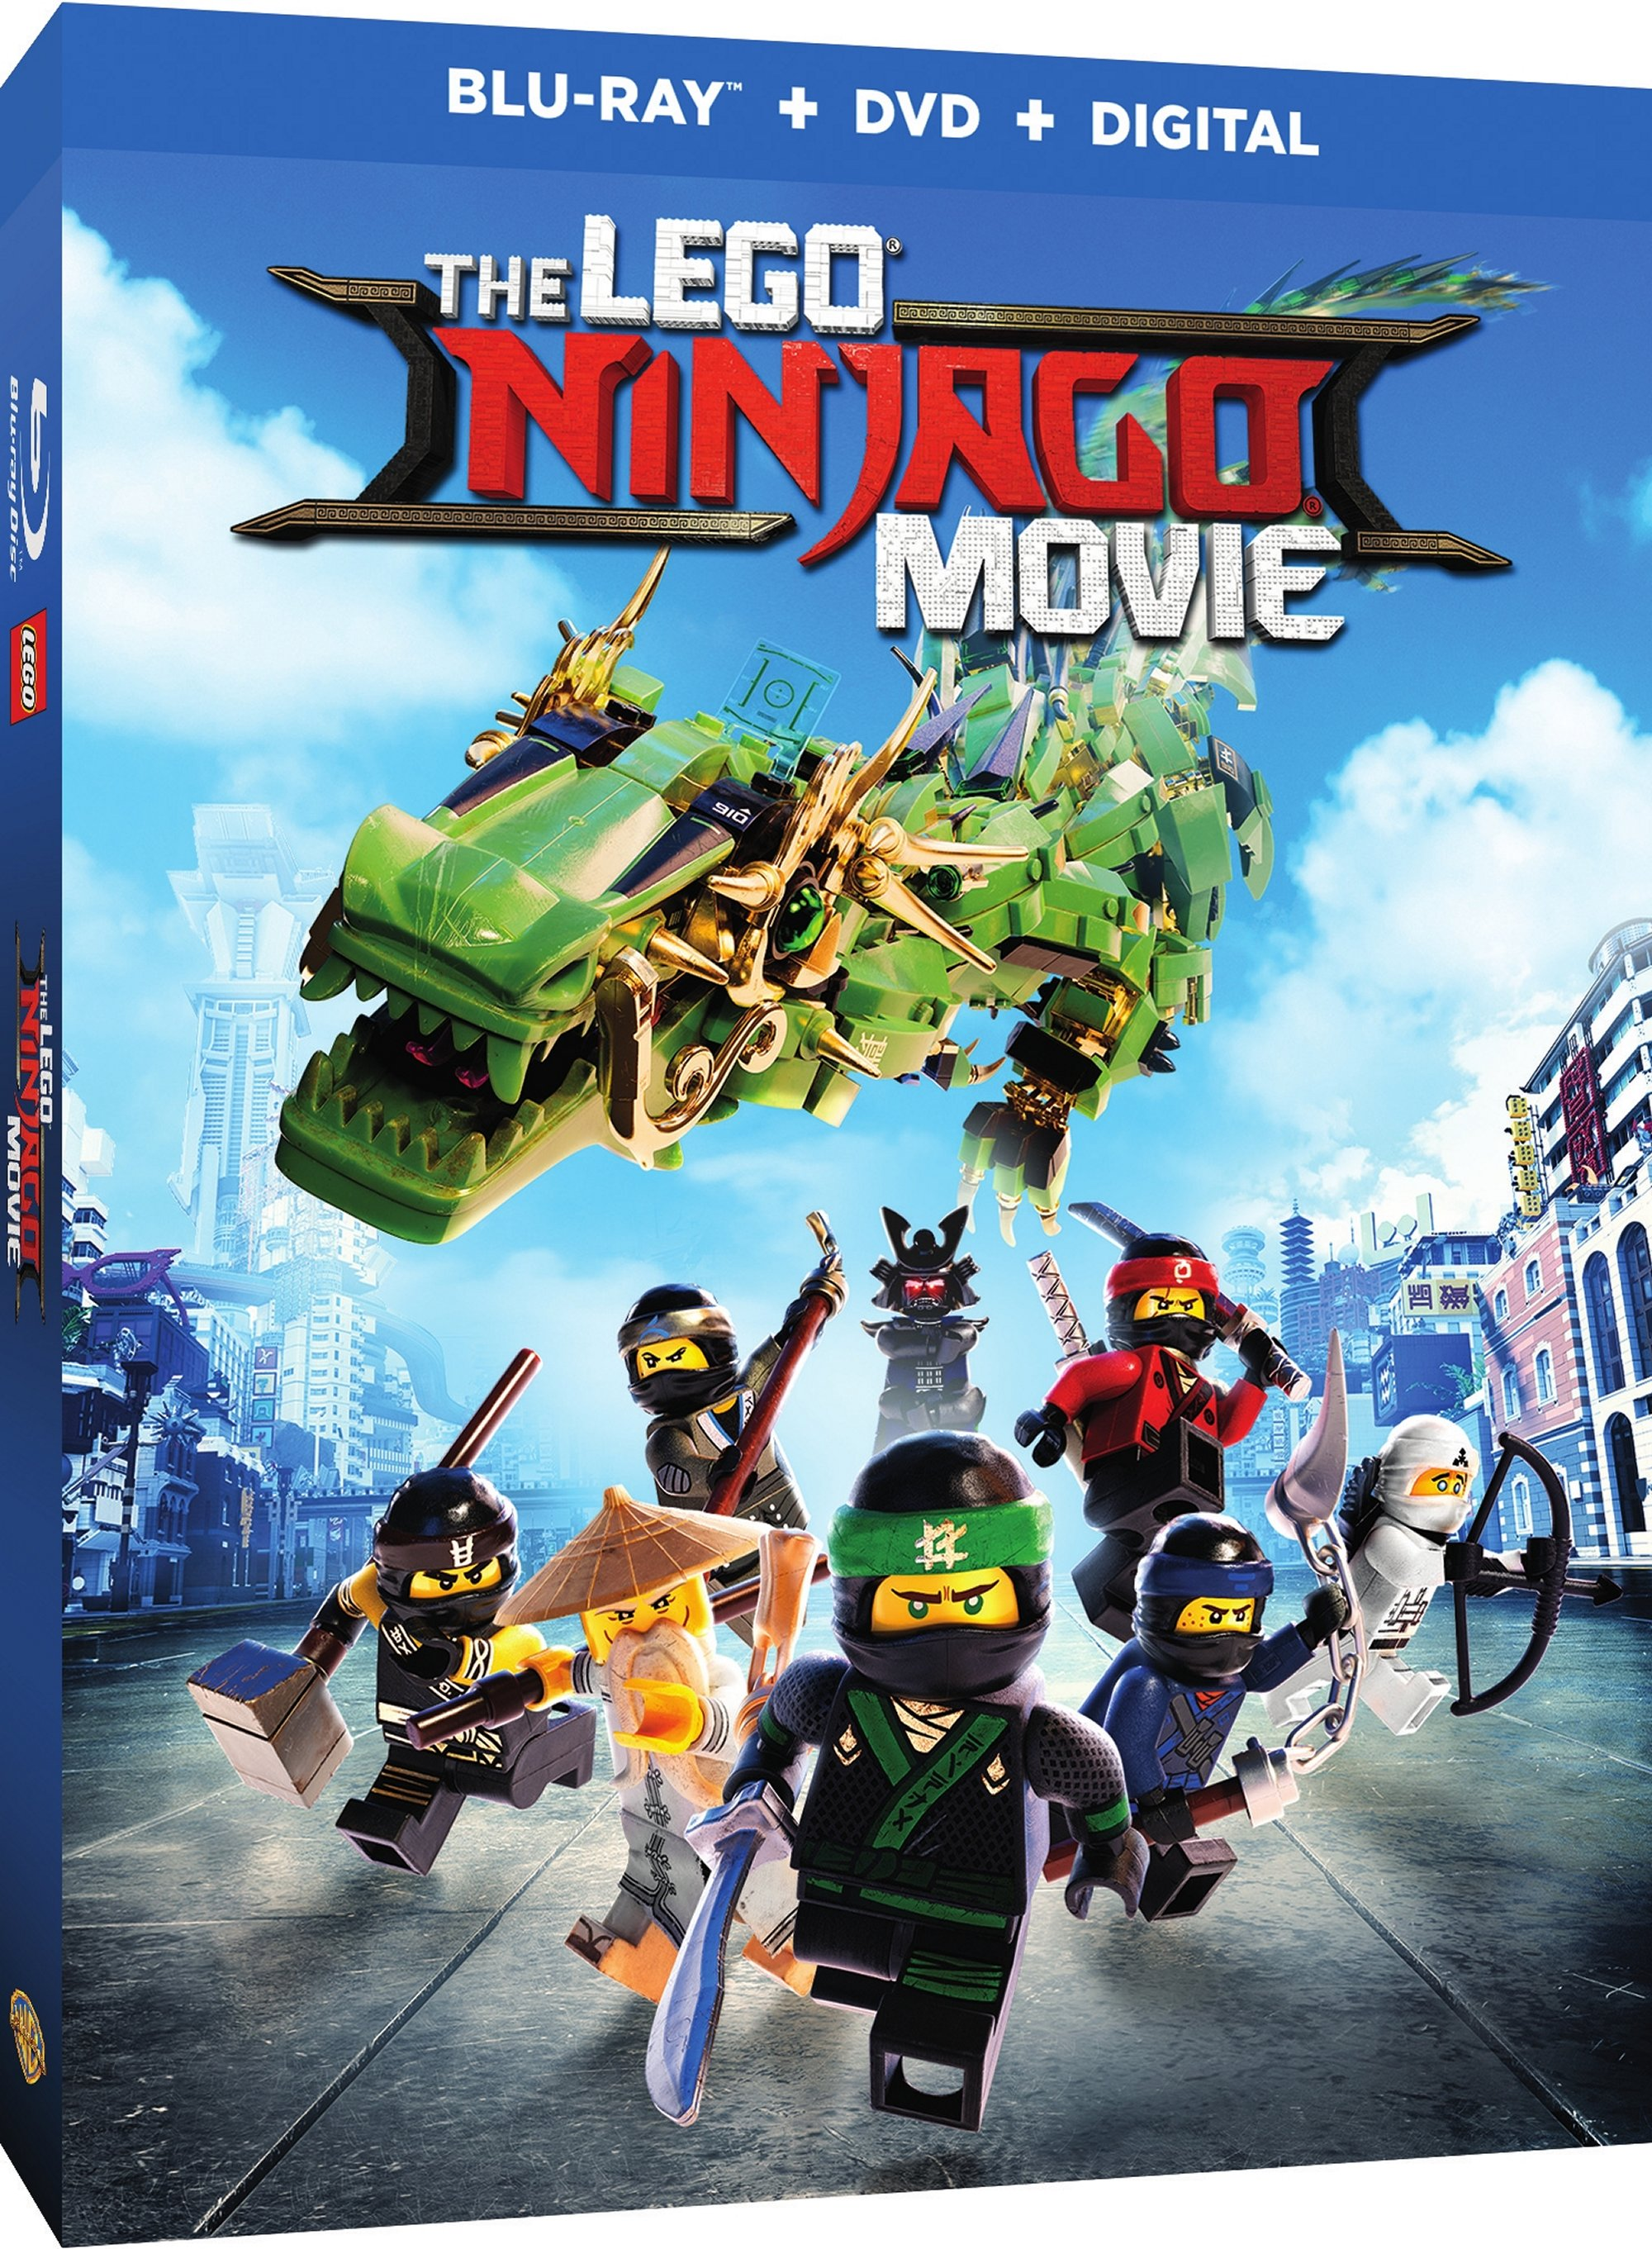 Own The Lego Ninjago Movie On 4k Ultra Hd Blu Ray 3d Blu Ray Blu Ray Combo Pack And Dvd On December 19 Or Own It Early On Digital Hd On December 12 Justlovemovies Com